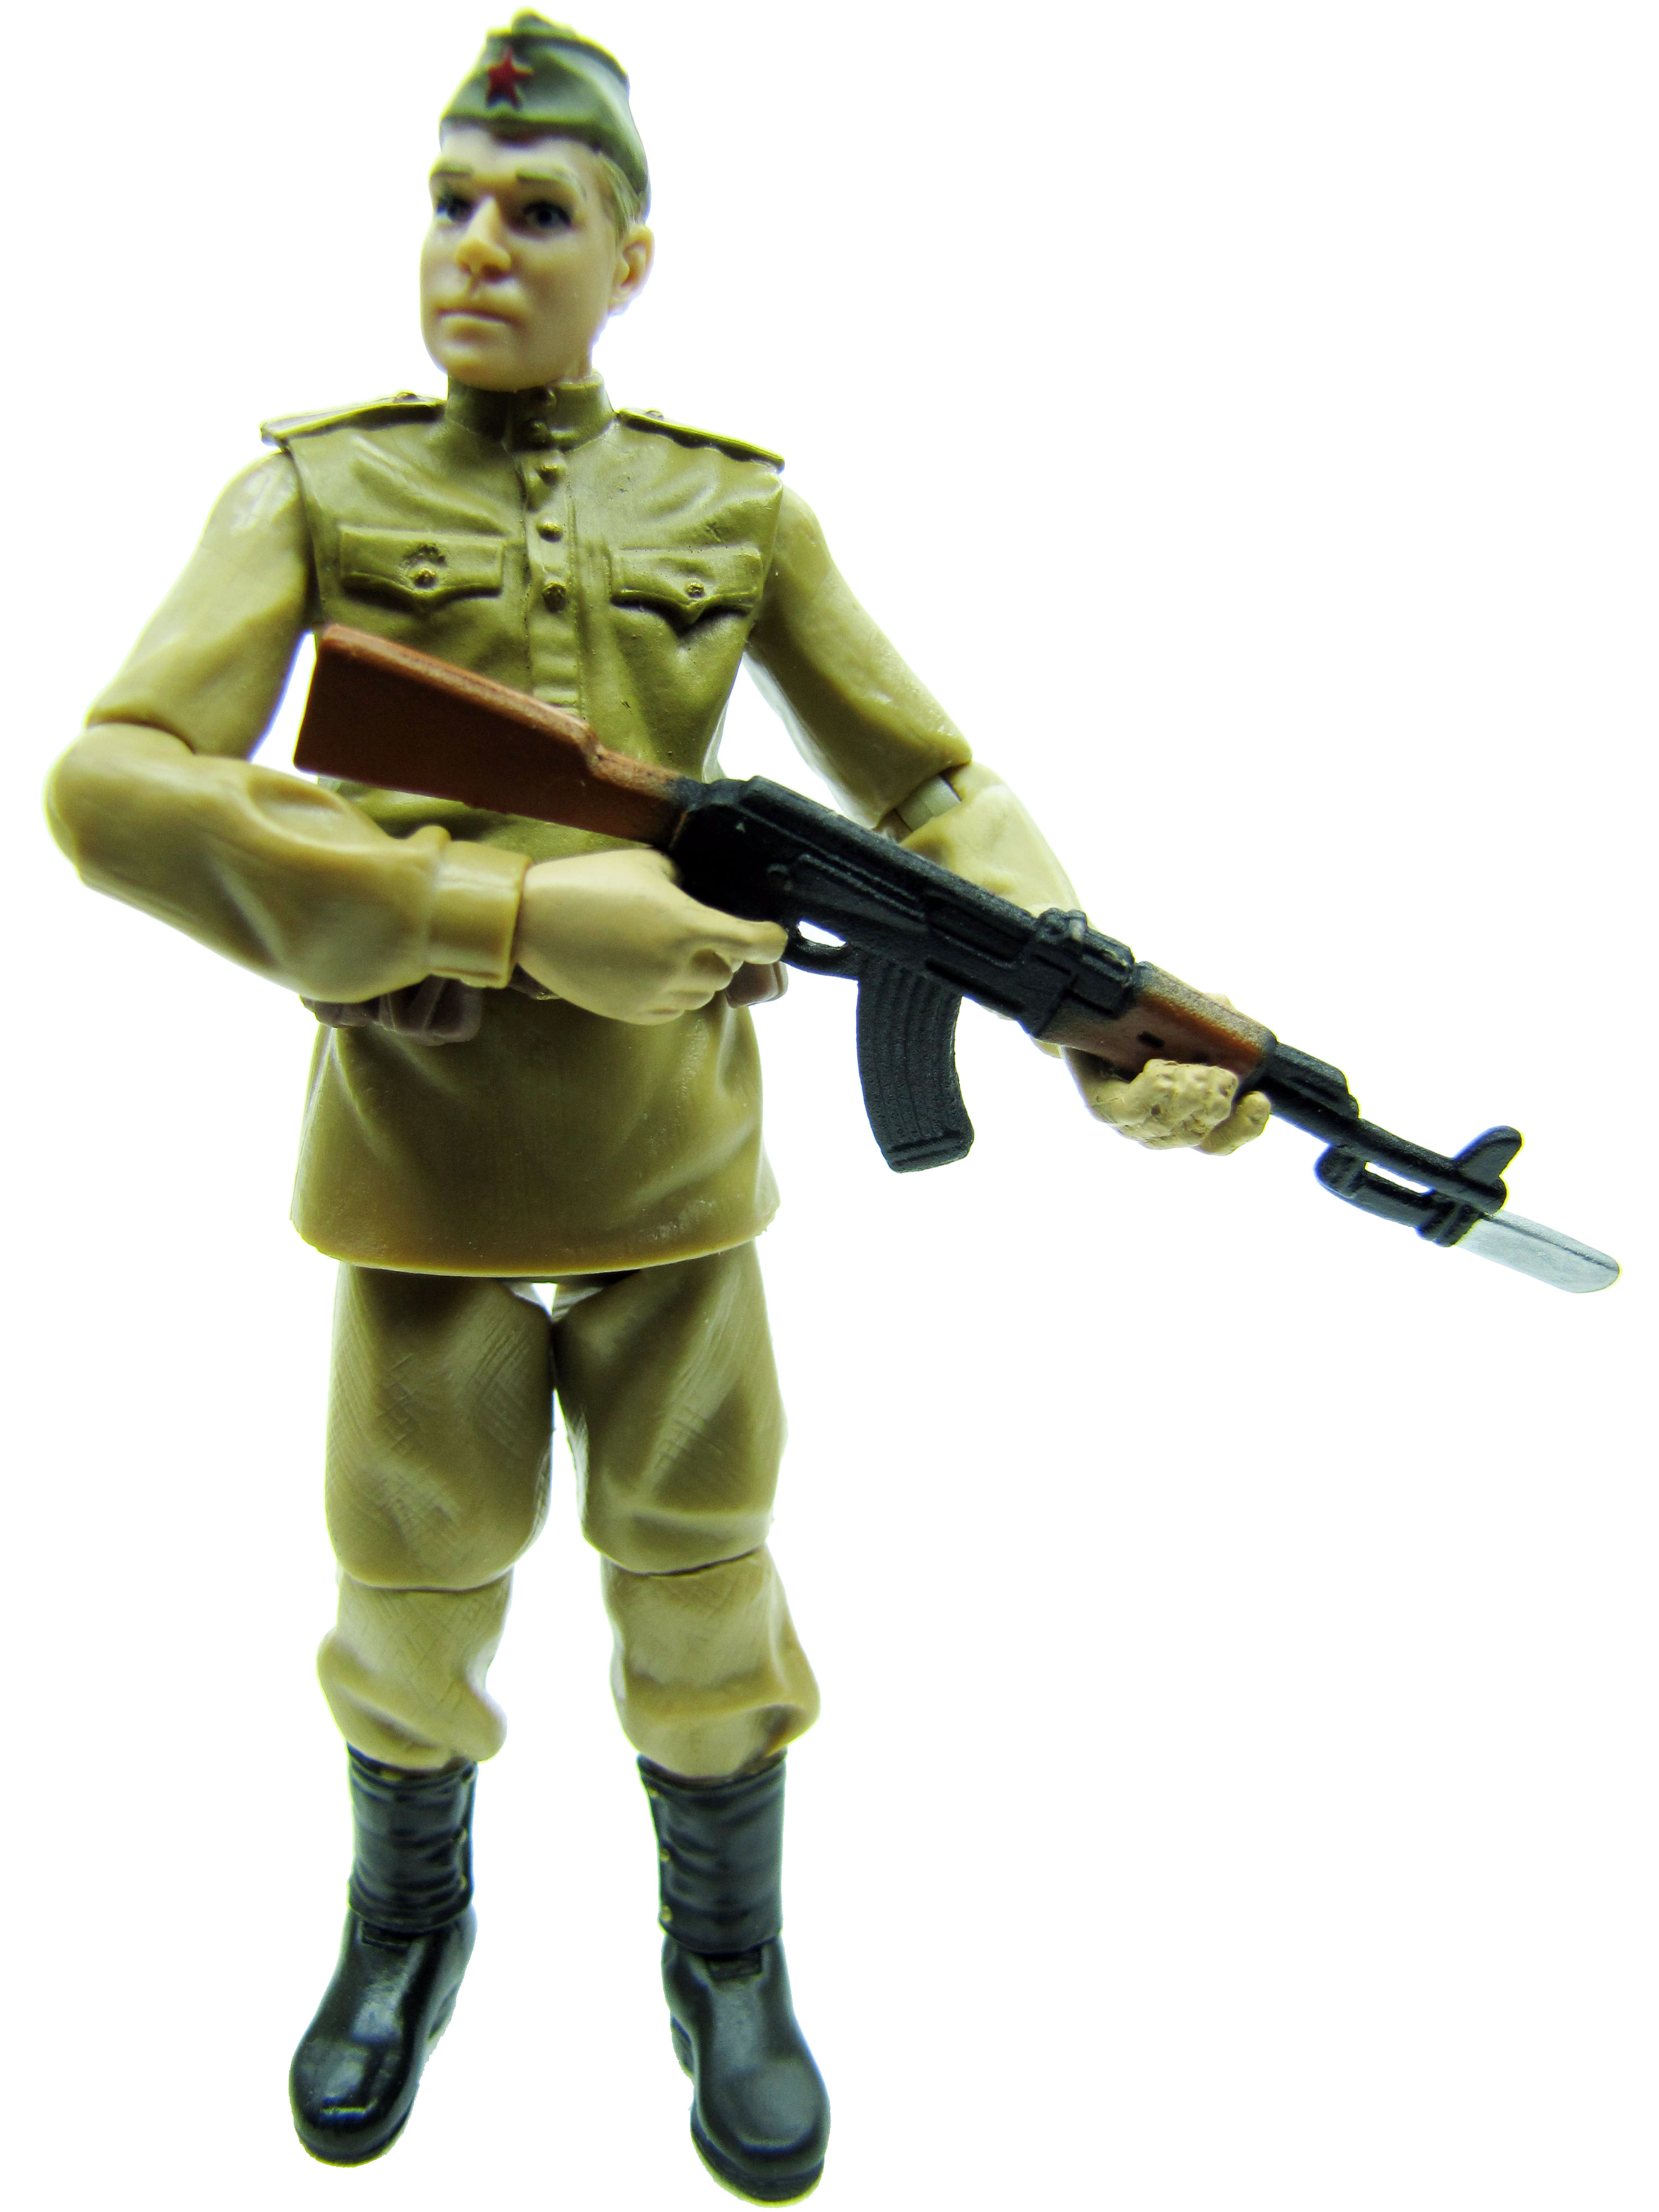 2008 Indiana Jones Kingdom of the Crystal Skull Russian Soldier